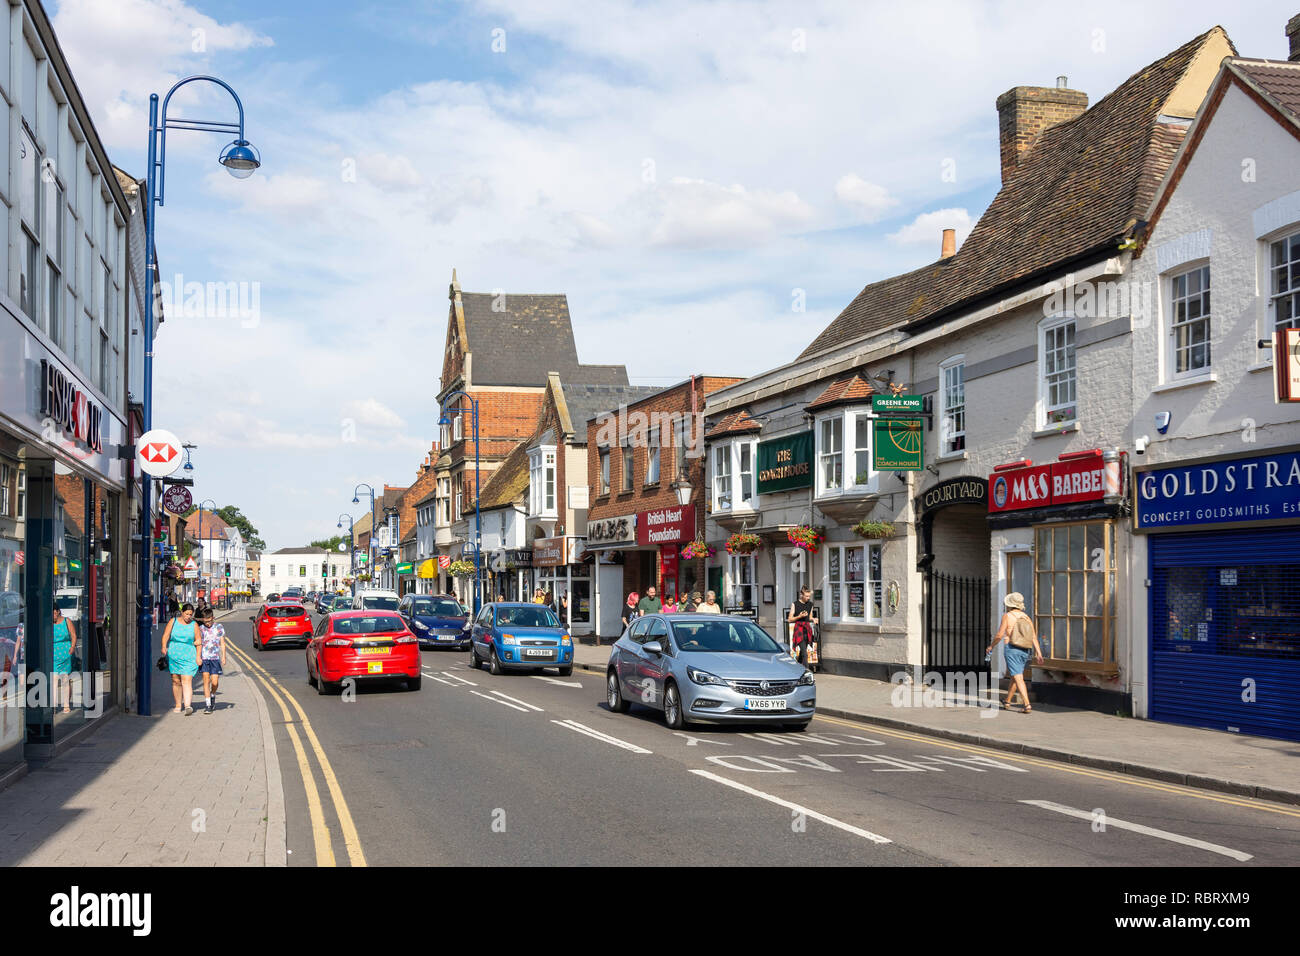 High Street, St Neots, Cambridgeshire, England, United Kingdom - Stock Image